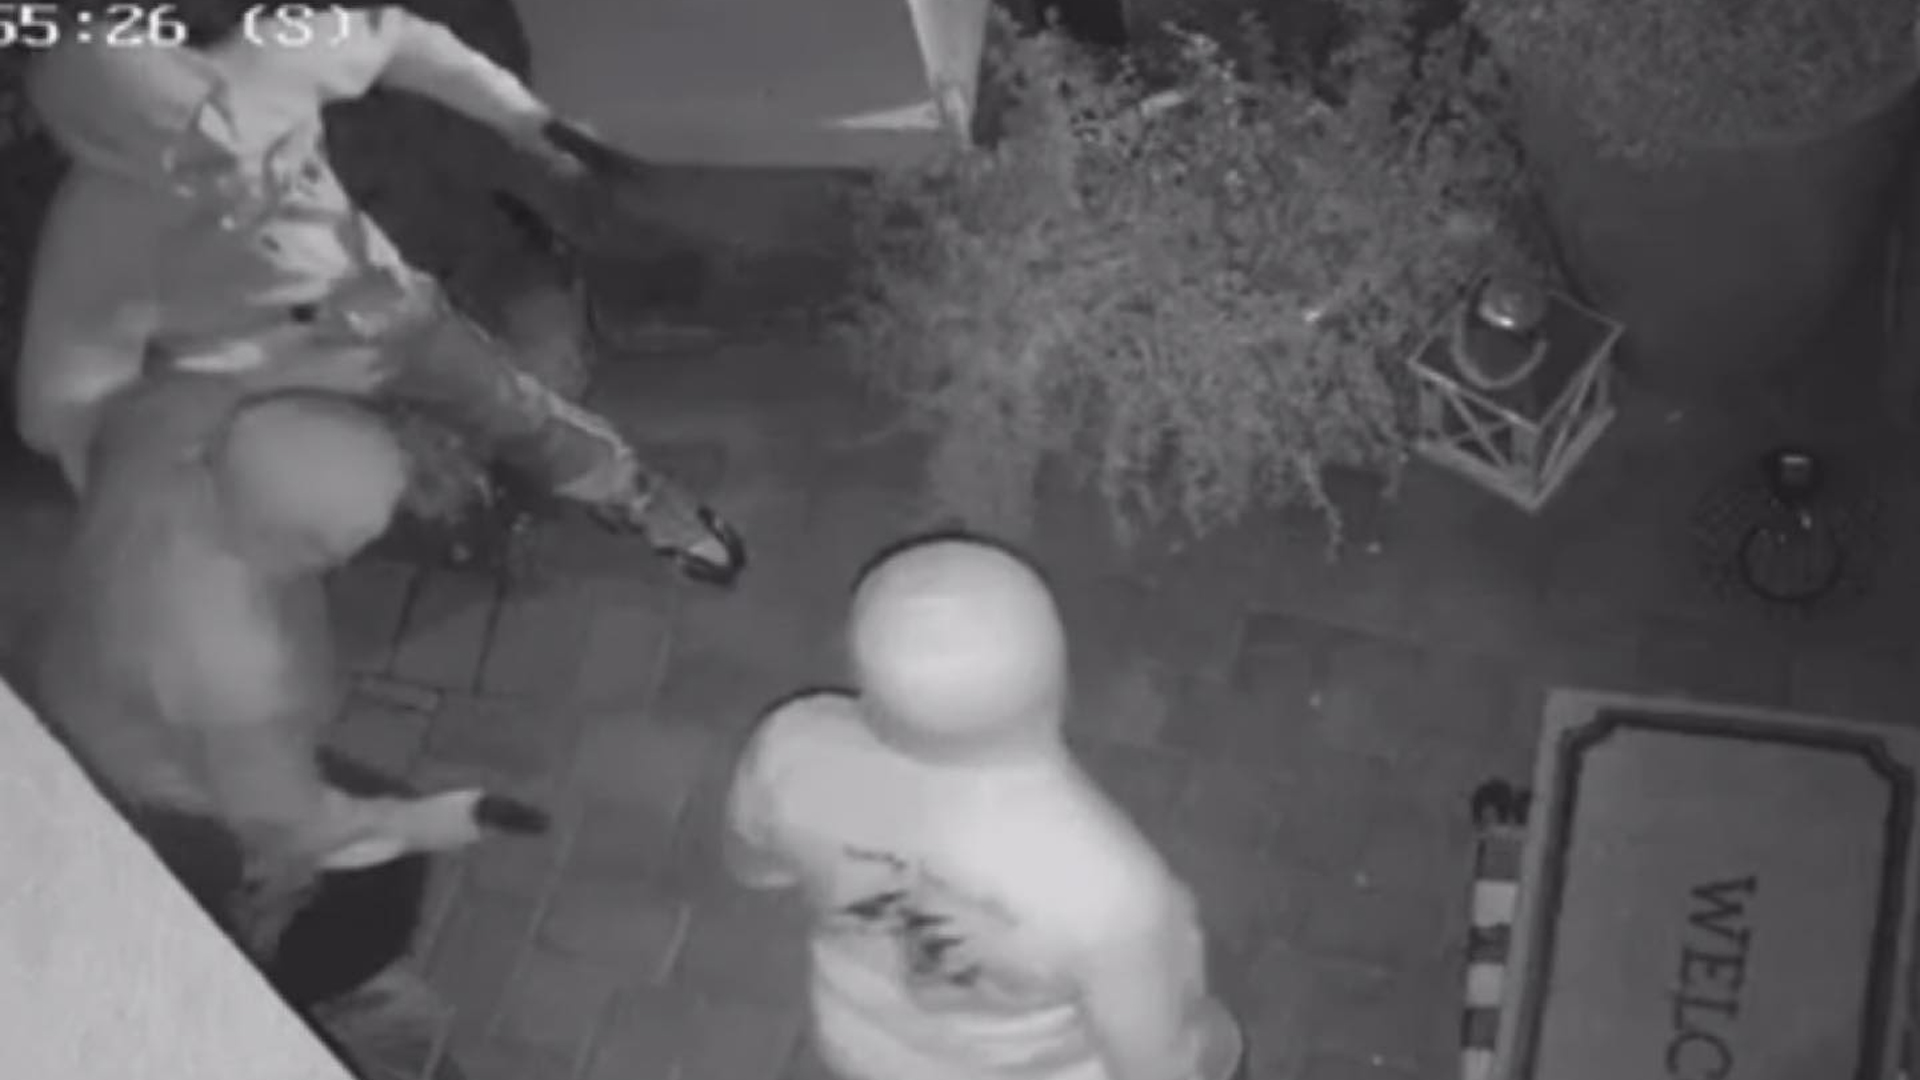 Surveillance video of a home invasion attempt was shared by the Fontana Police Department on Aug. 19, 2021.